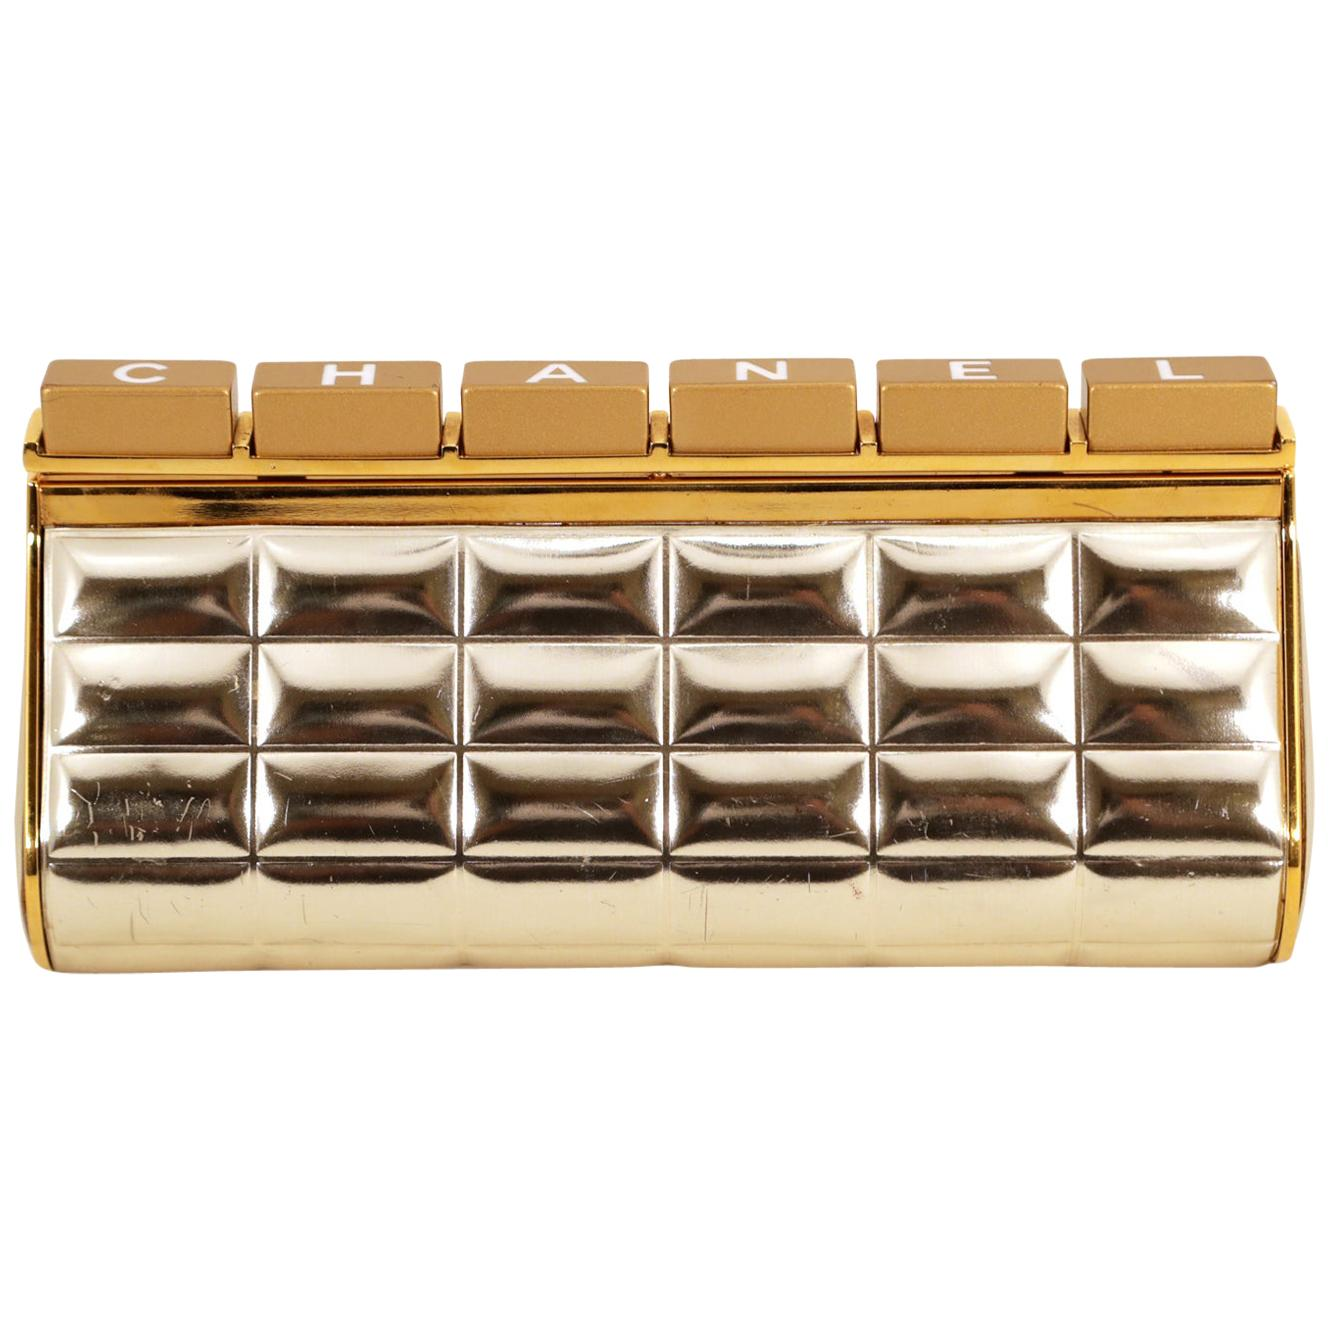 Chanel Silver and Gold Keyboard Clutch